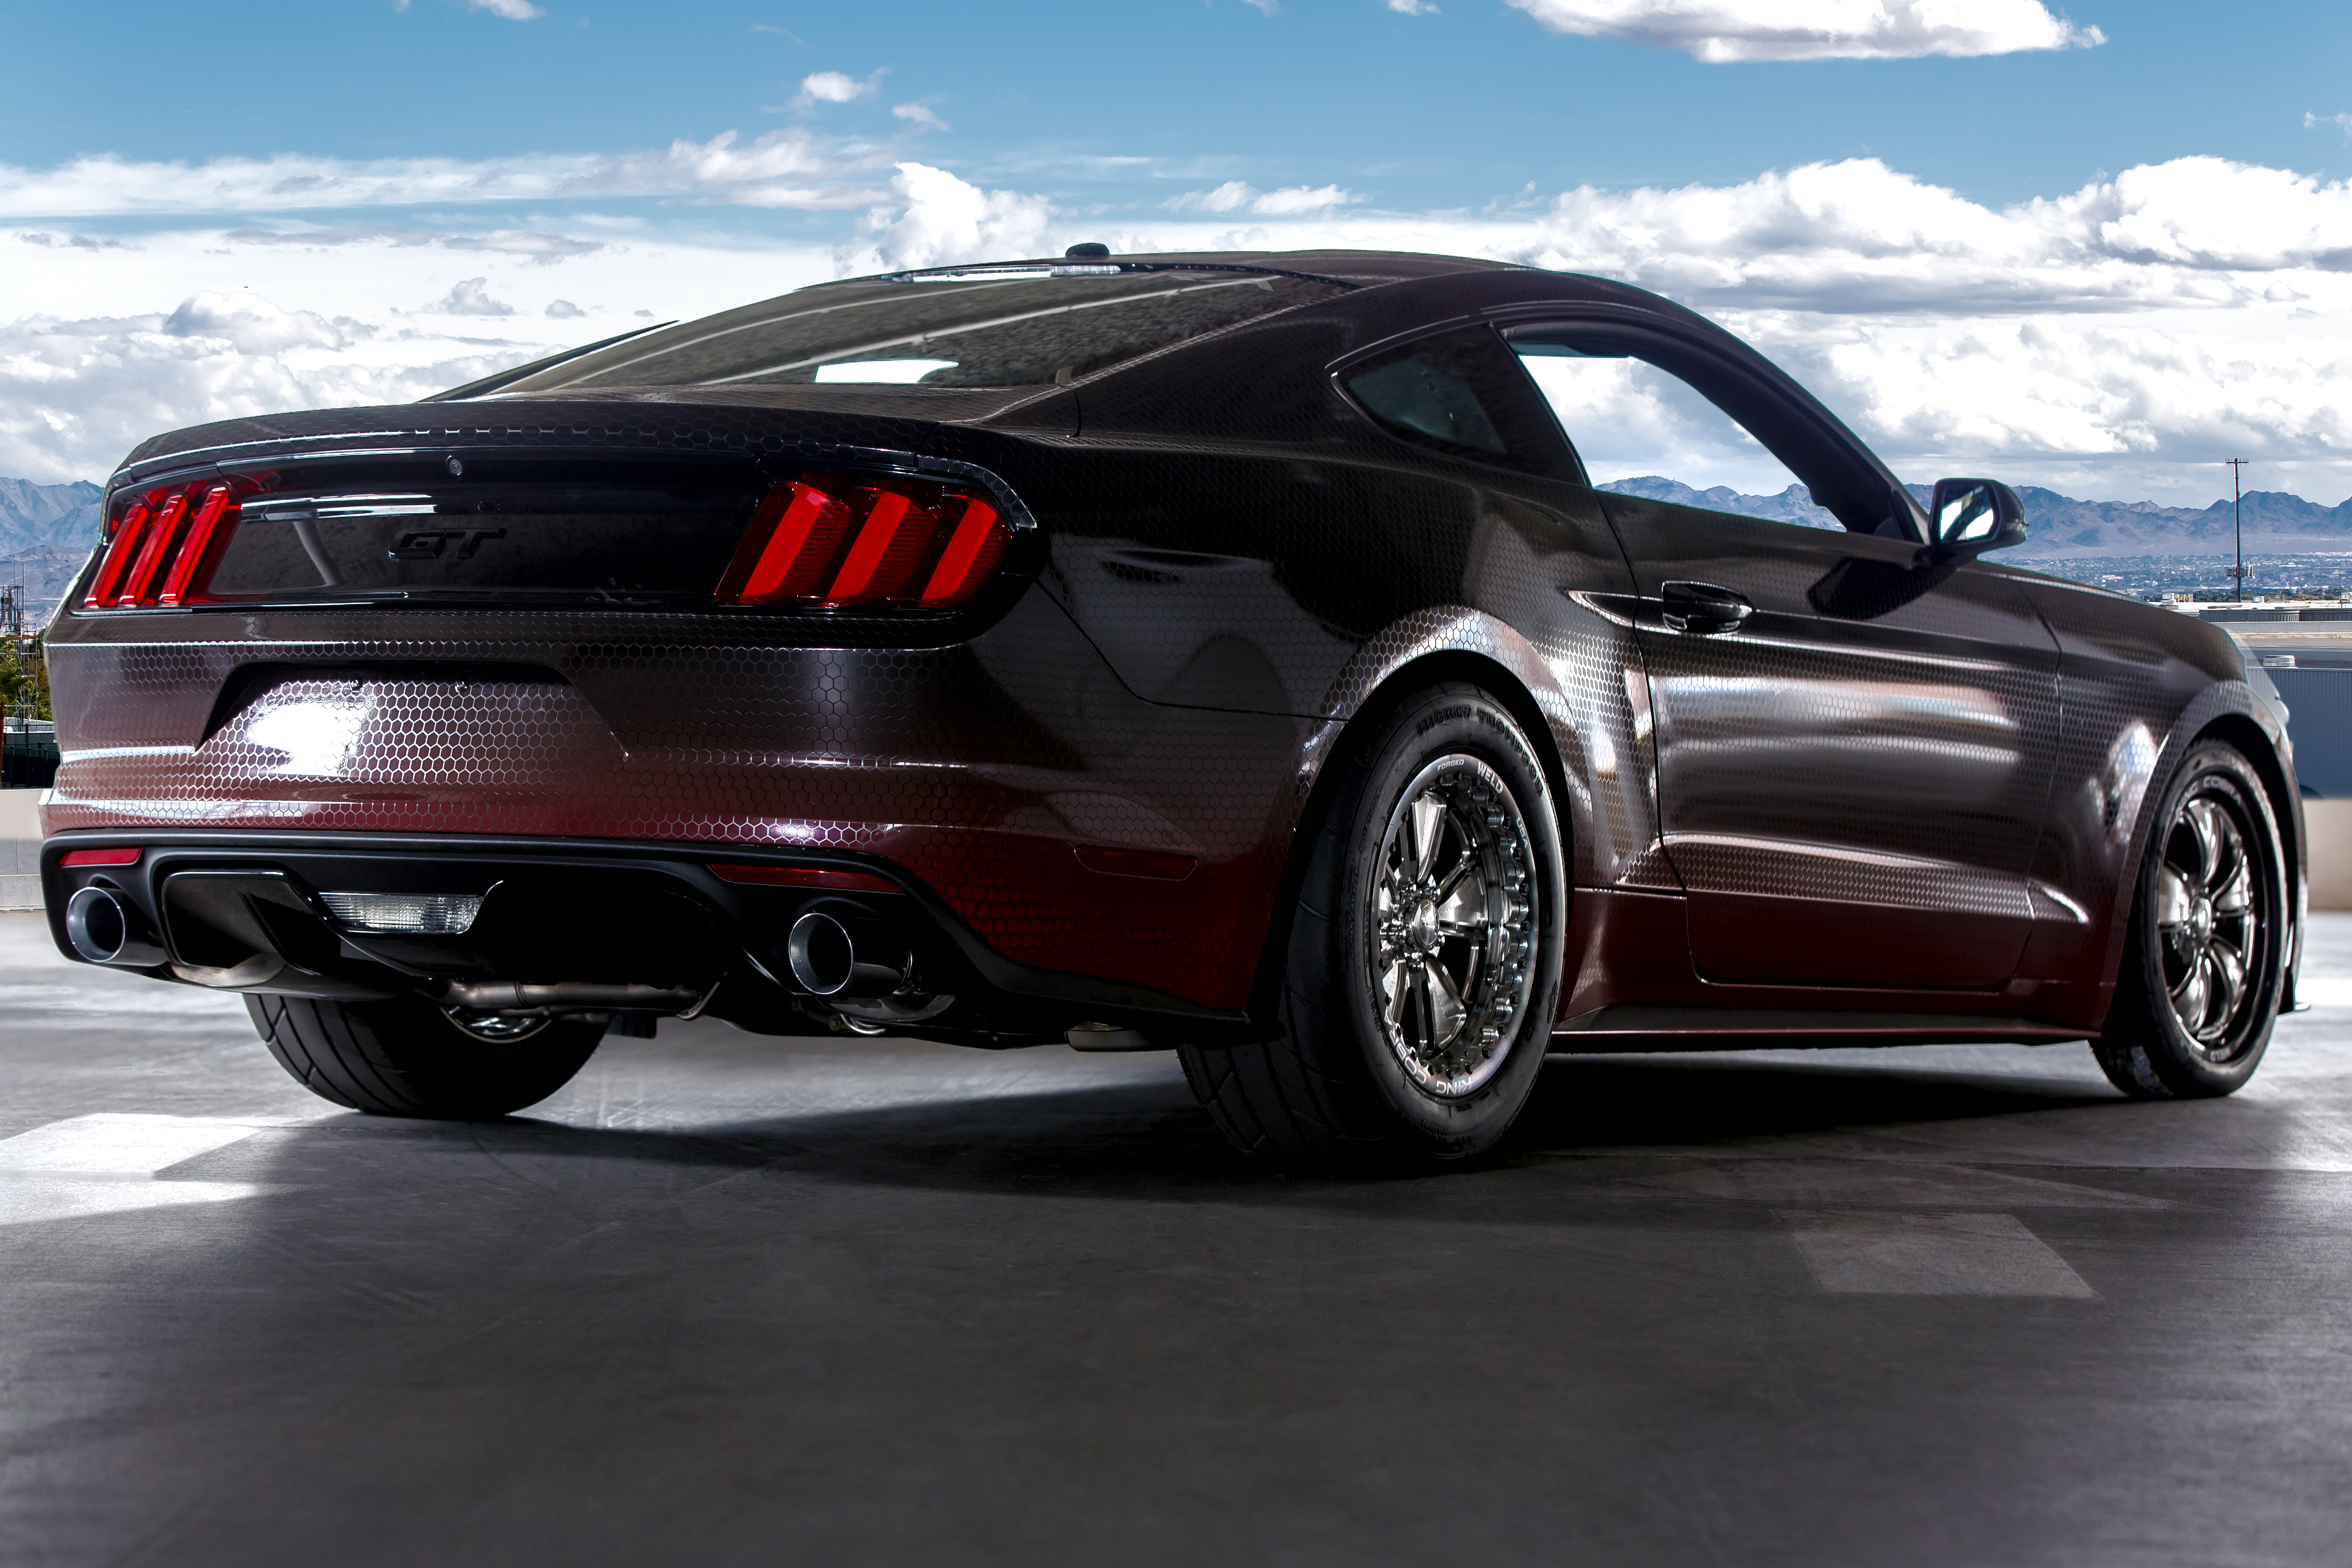 SEMA: King Cobra Parts Released for the 2015 Mustang GT